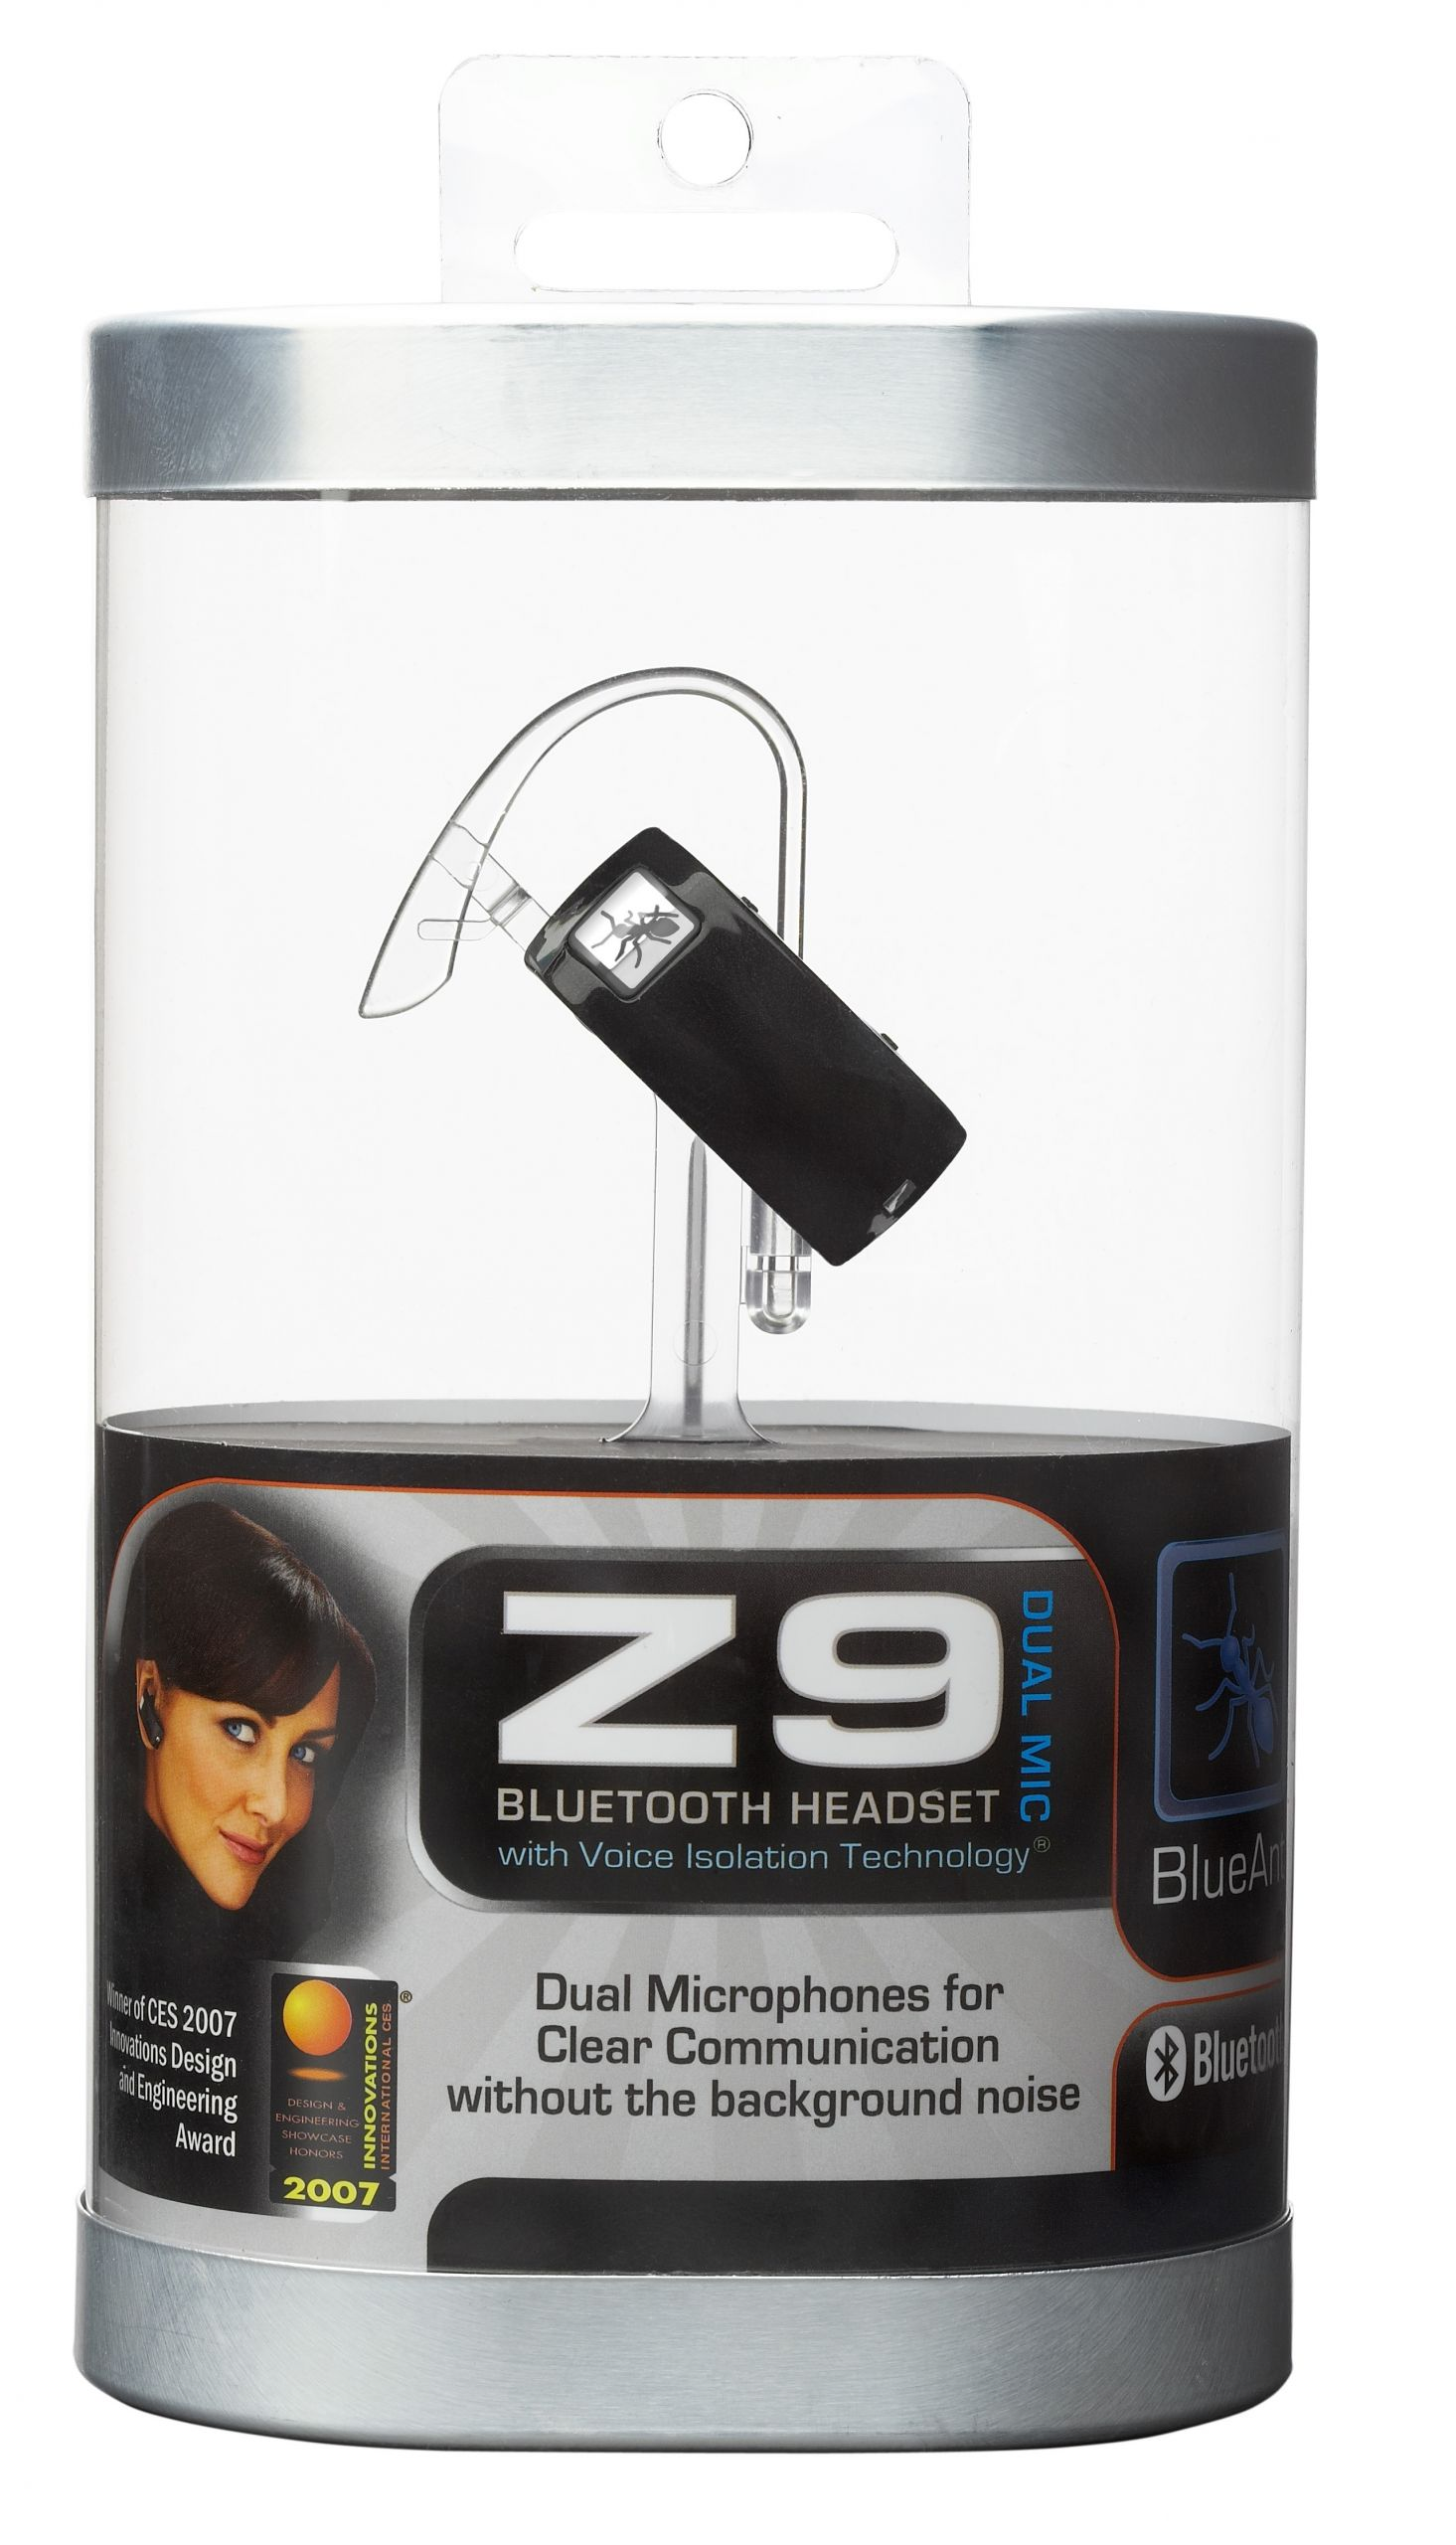 Blueant Z9 in Packaging